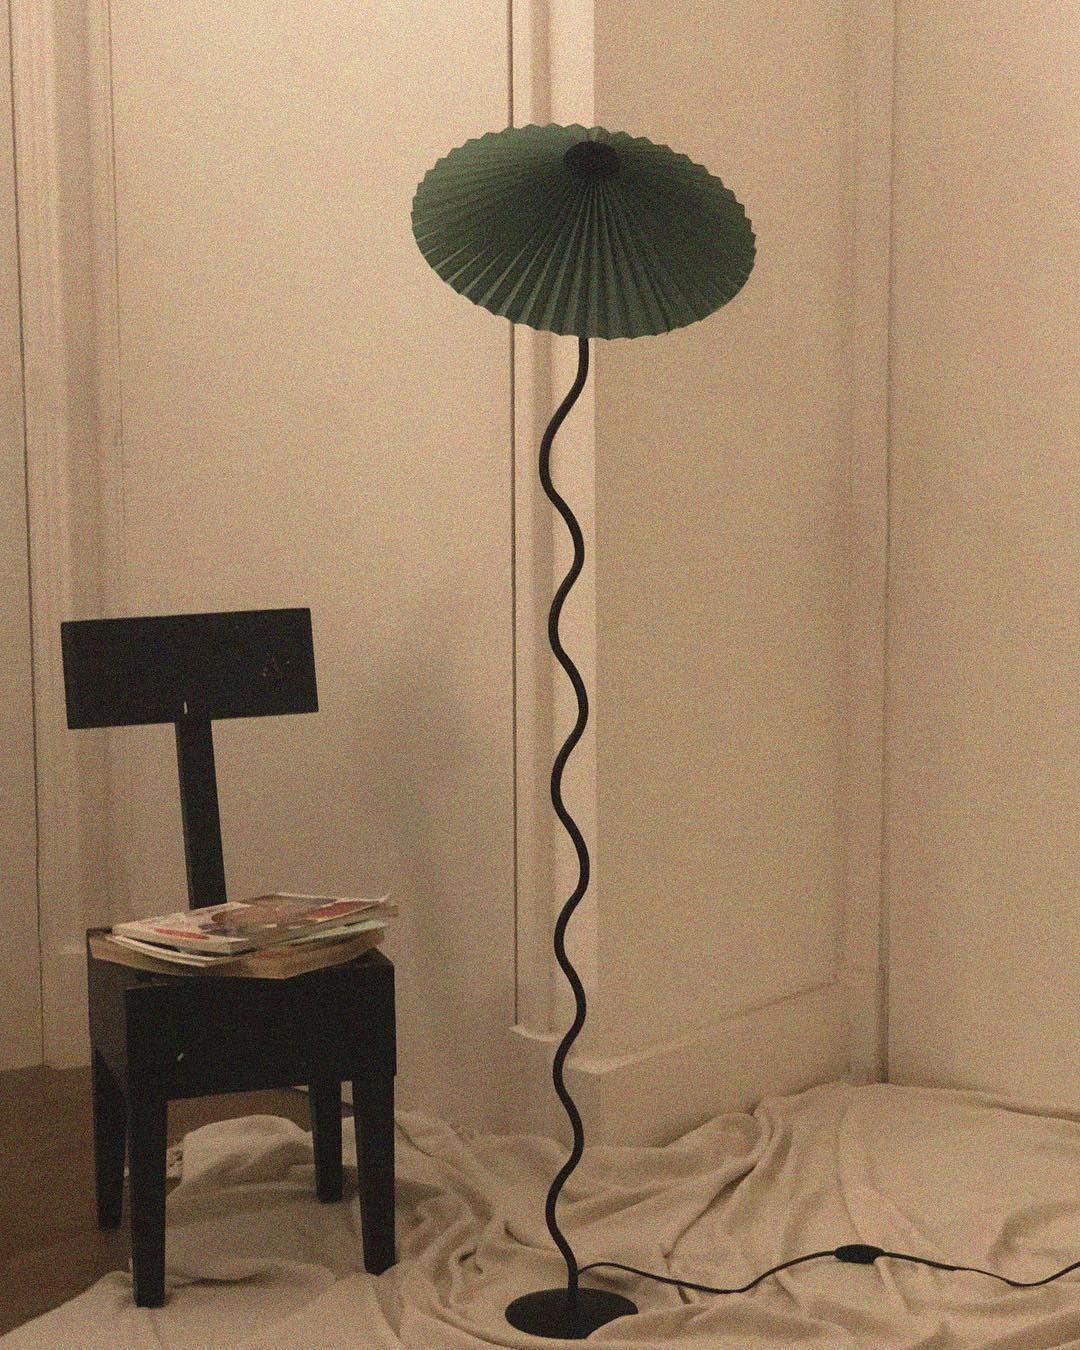 Oscar Piccolo On Instagram I Went To Sicily And Brought A Selection Of Lampada Cappello Da Terra In Verde With Me Lighting Inspiration Piccolo Inspiration